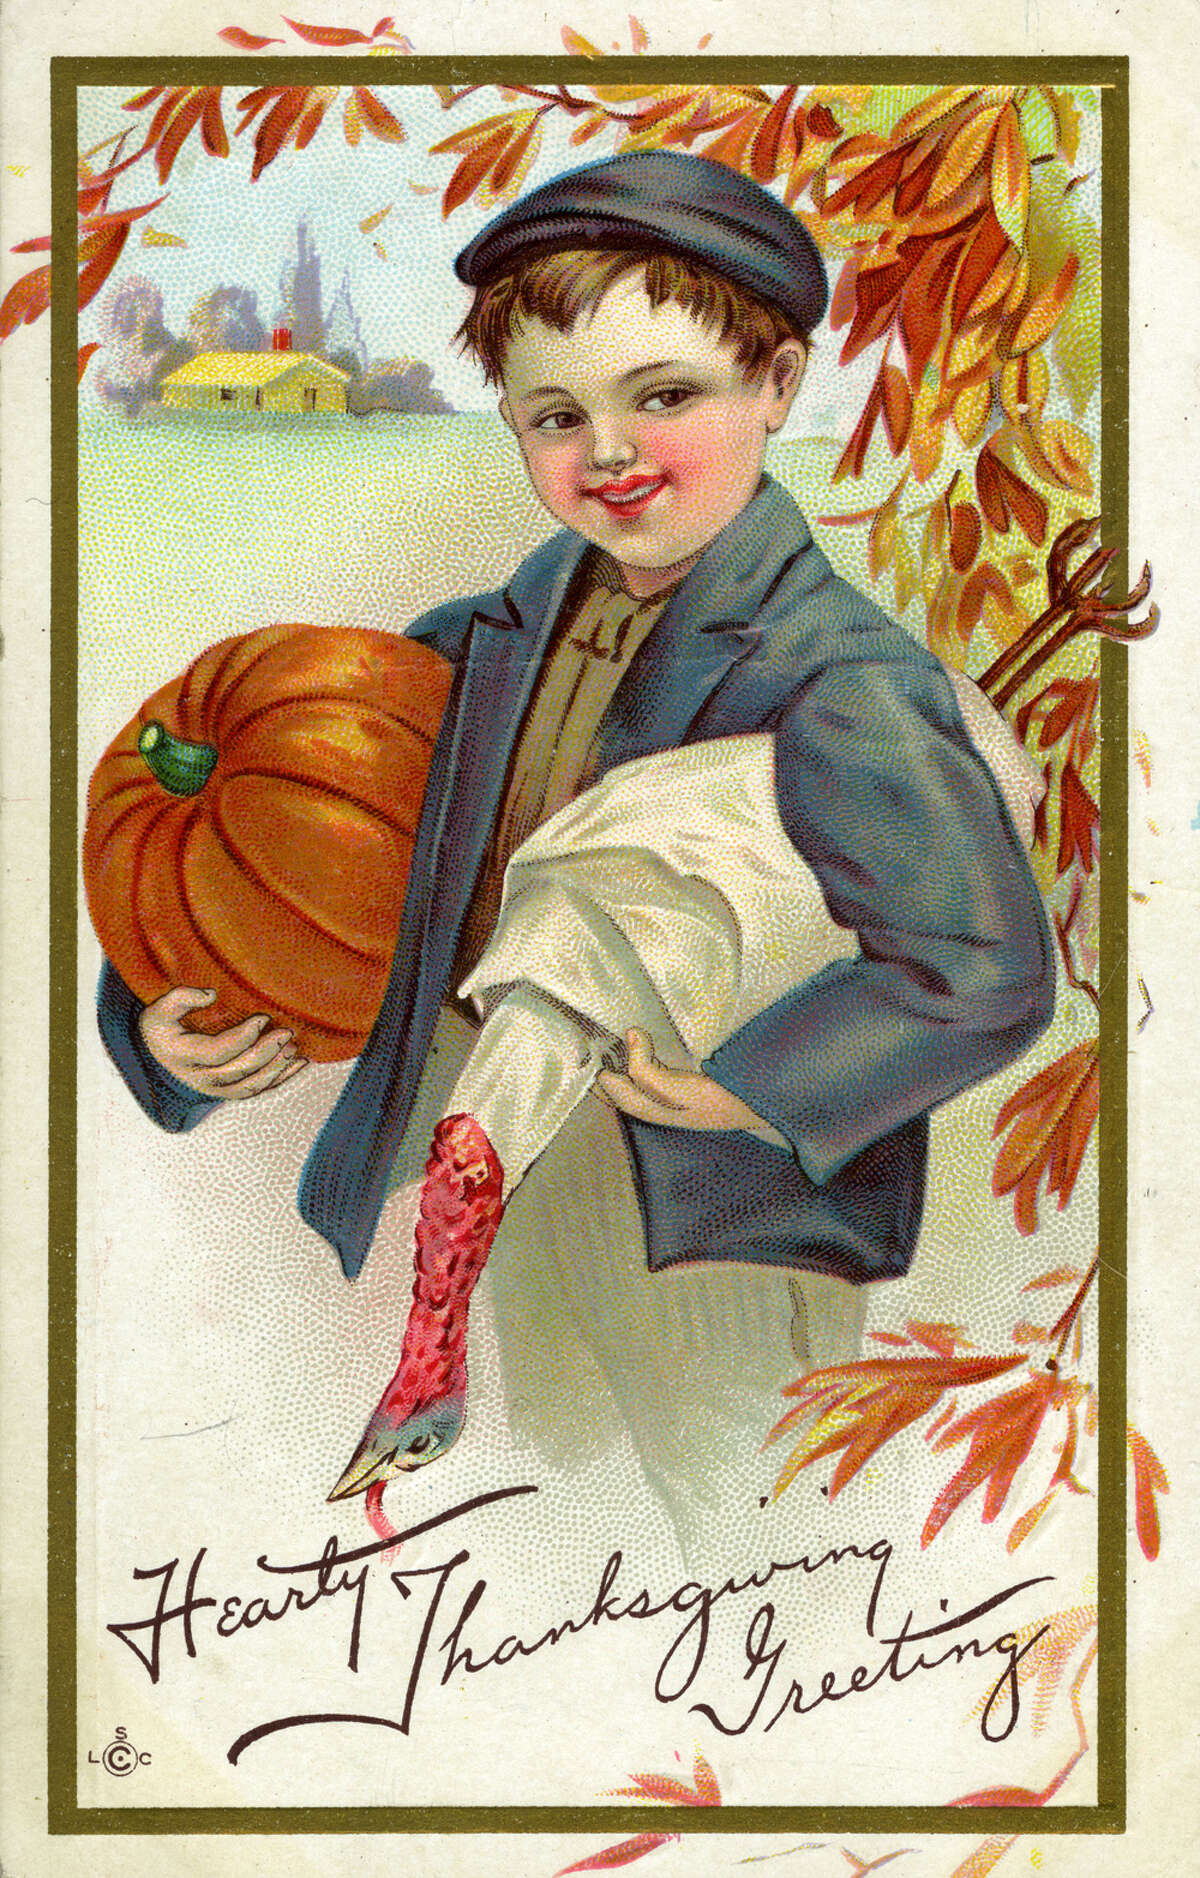 Thanksgiving postcard showing a young boy carrying a pumpkin under one arm and a turkey under the other, United States, 1915.